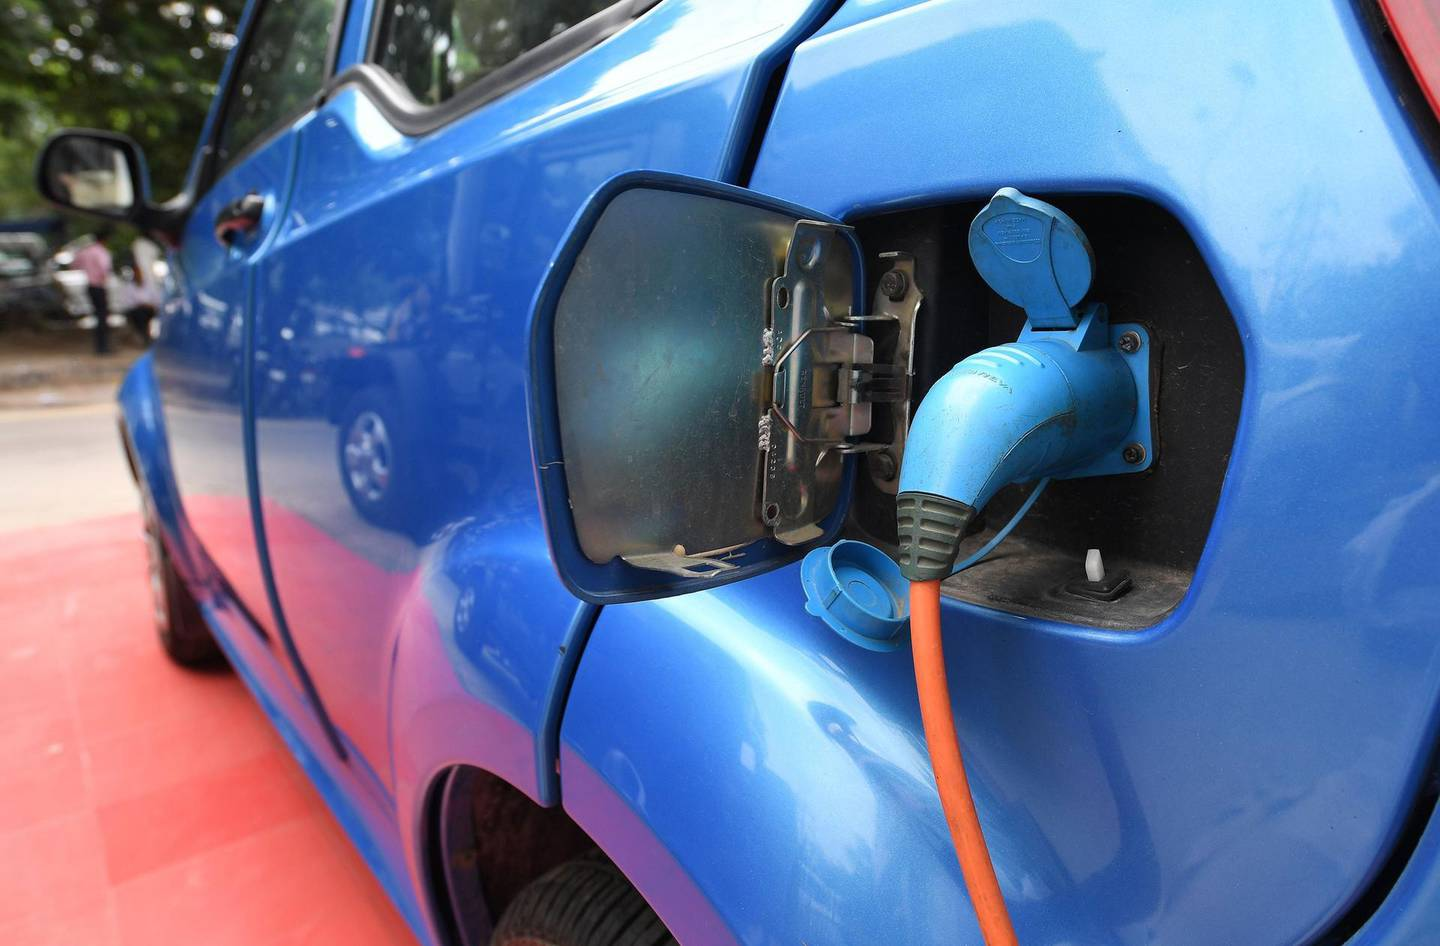 """This photo taken on July 21, 2017 shows Mahindra's electric car """"e2o Plus"""" plugged in for charging at a showroom in New Delhi. India will roll out nearly 100,000 battery-powered buses and autorickshaws onto its sulpherous, clogged city streets in coming weeks to set it on the road to make new vehicle sales all-electric by 2030. India, one of the world's most polluted nations, has one of the most ambitious plans to kick its fossil fuel addiction. Analysts say the target is """"daunting"""".  / AFP PHOTO / Prakash SINGH / TO GO WITH: India-automobile-pollution-technology, FOCUS by Megha BAHREE"""